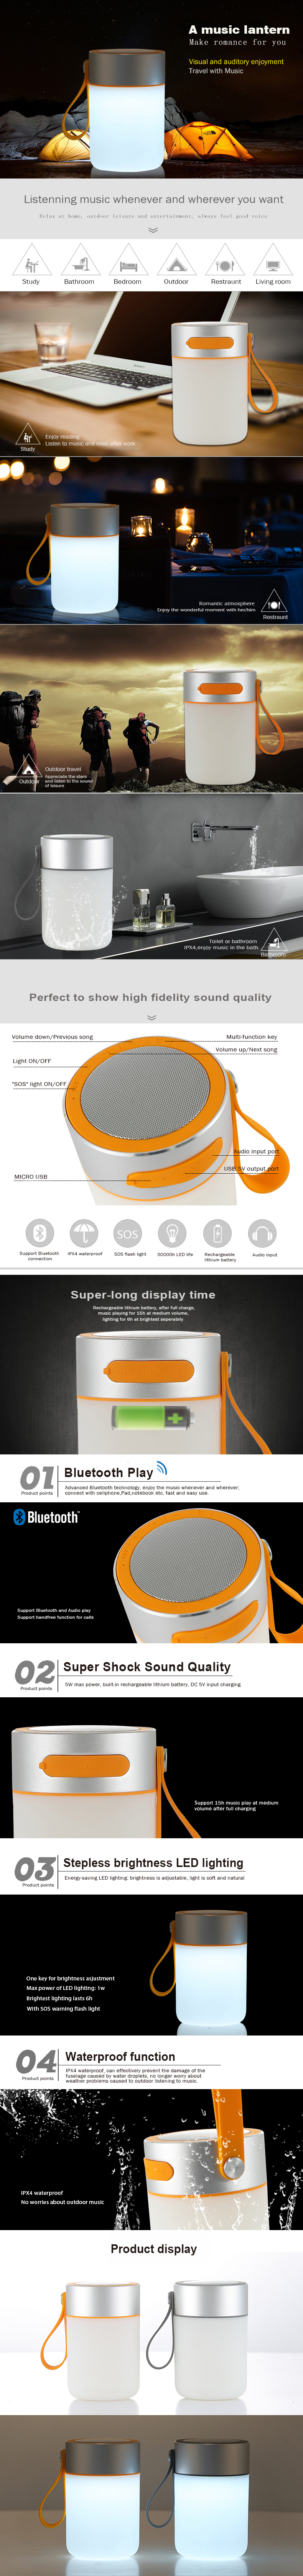 Sport Hiking & camping wireless Bluetooth speaker with SOS flashing light and emergency powerbank